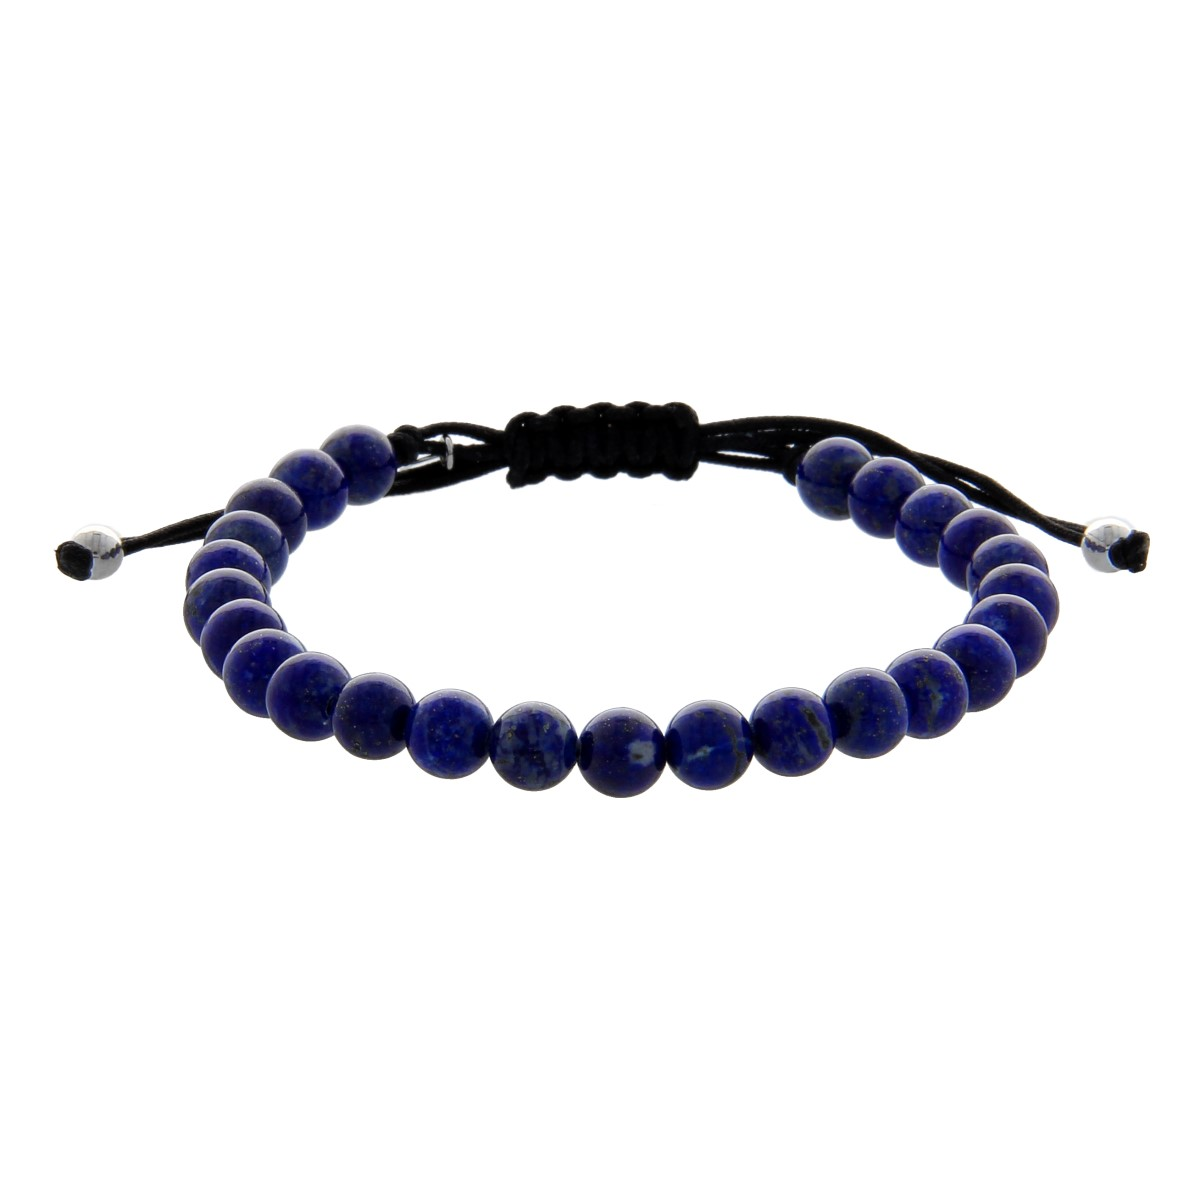 Black String Bracelet with Lapis Lazuli Pearls